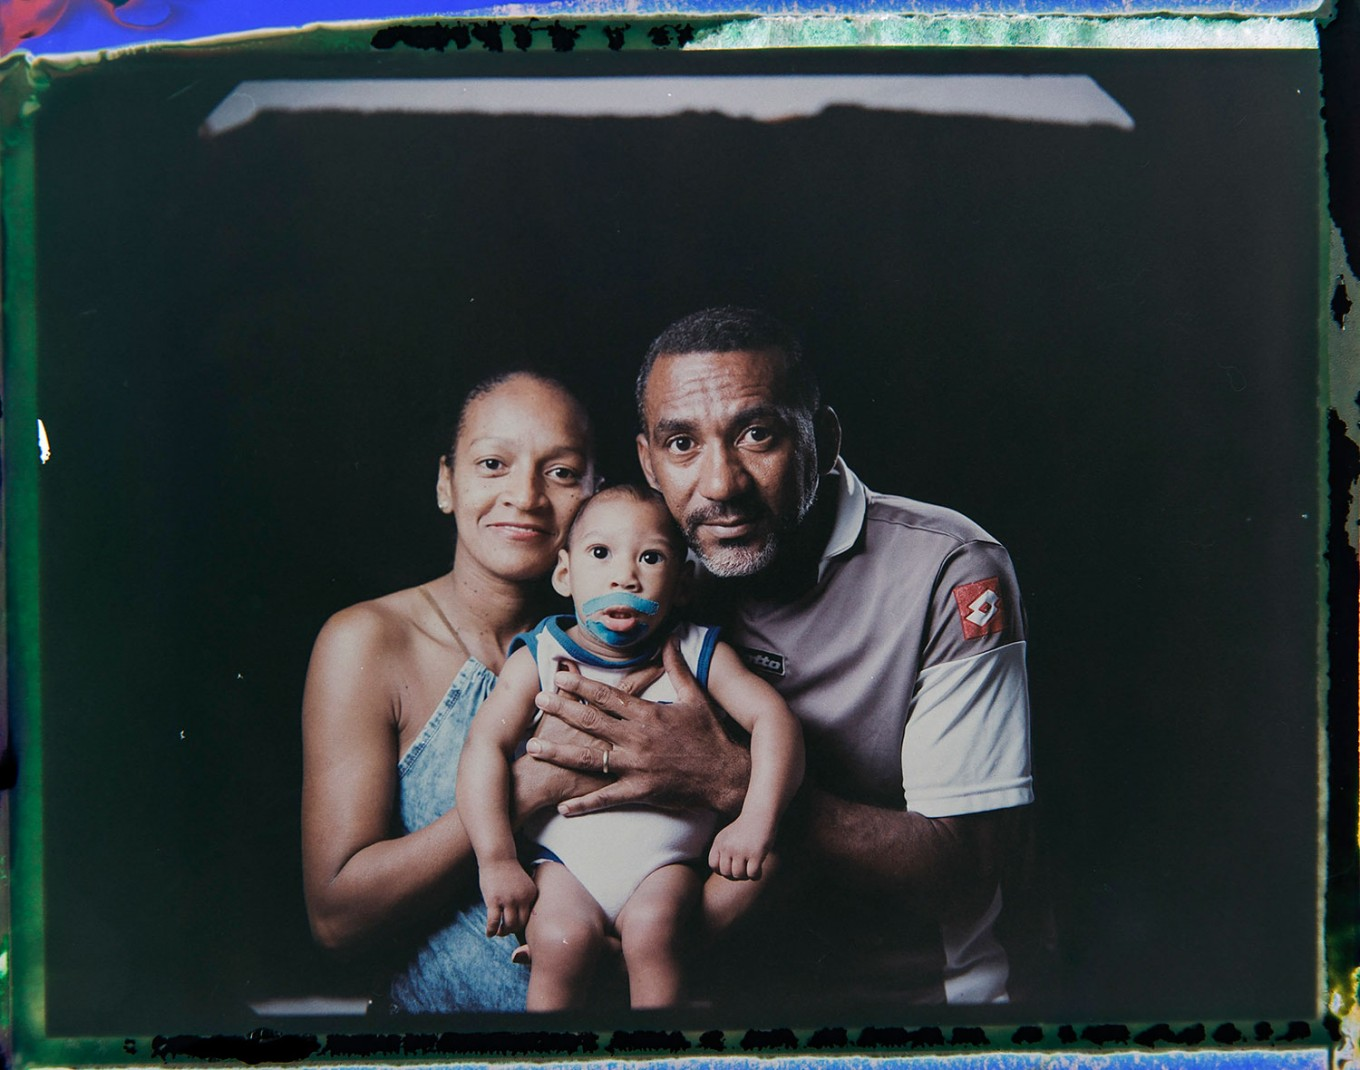 In this Sept. 29, 2016 photo made from a negative recovered from instant film, Diana Felix and Carlos Alberto Dias, pose with their son, Ezequiel, who was born with microcephaly, one of many serious medical problems that can be caused by congenital Zika syndrome, in Recife, Pernambuco state, Brazil. Dias stopped working to help Felix care for their four children. Sometimes he accompanies her to Ezequiel's therapy sessions and medical appointments, which can be as often as five times a week. AP Photo/Felipe Dana